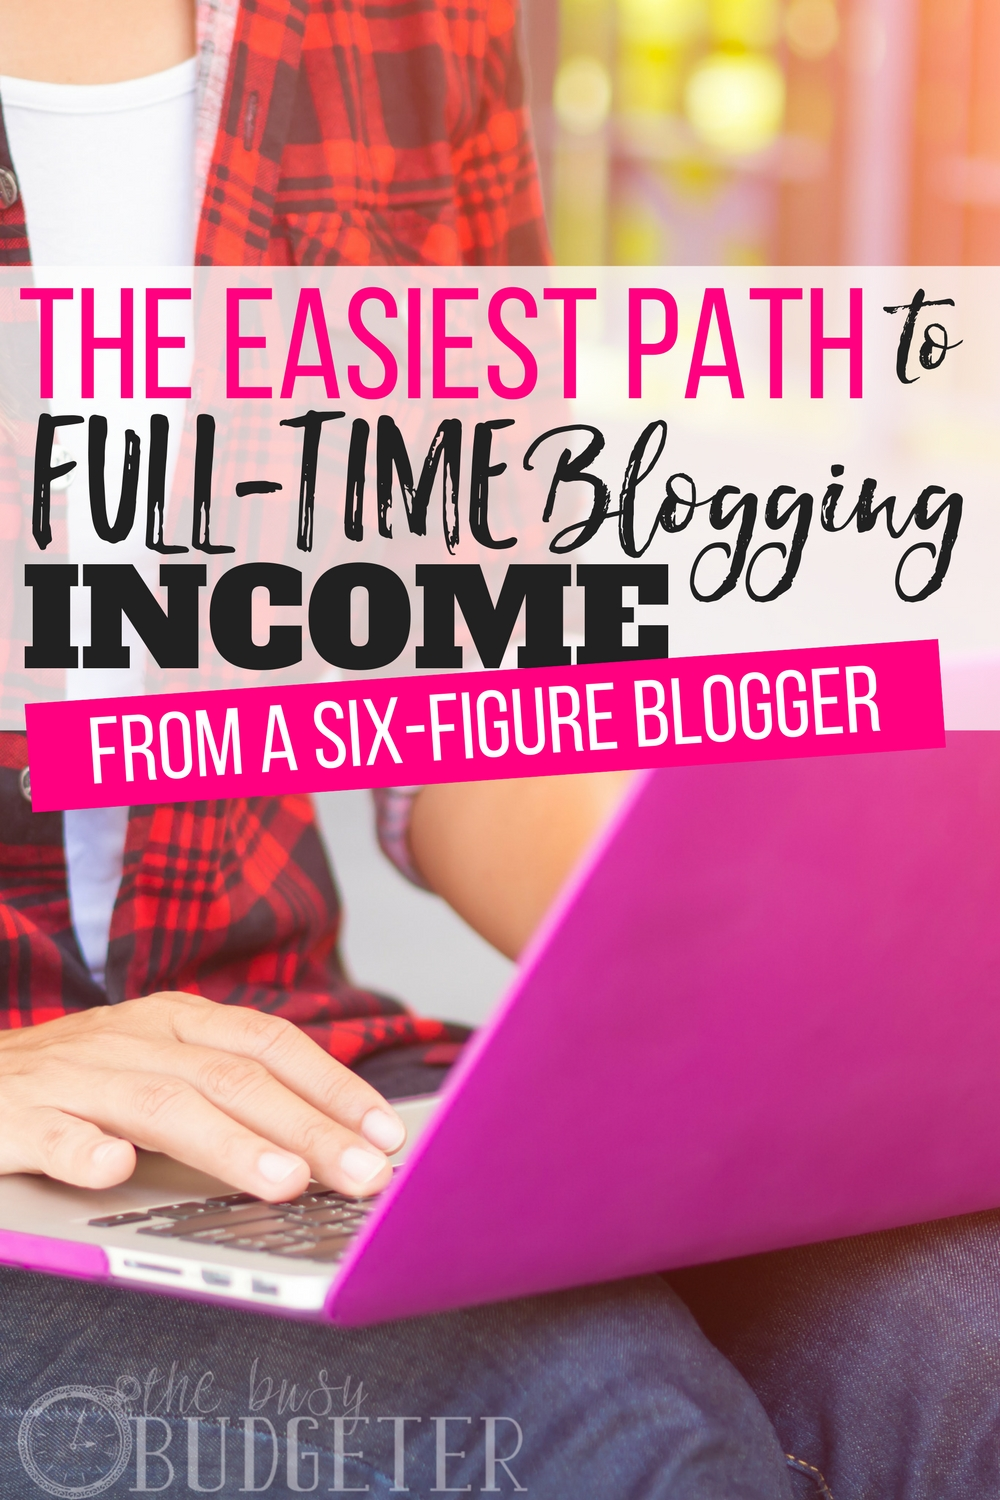 These 7 successful blogging secrets are THE REAL DEAL. So excited I'm on my way to earning more money with my blog!